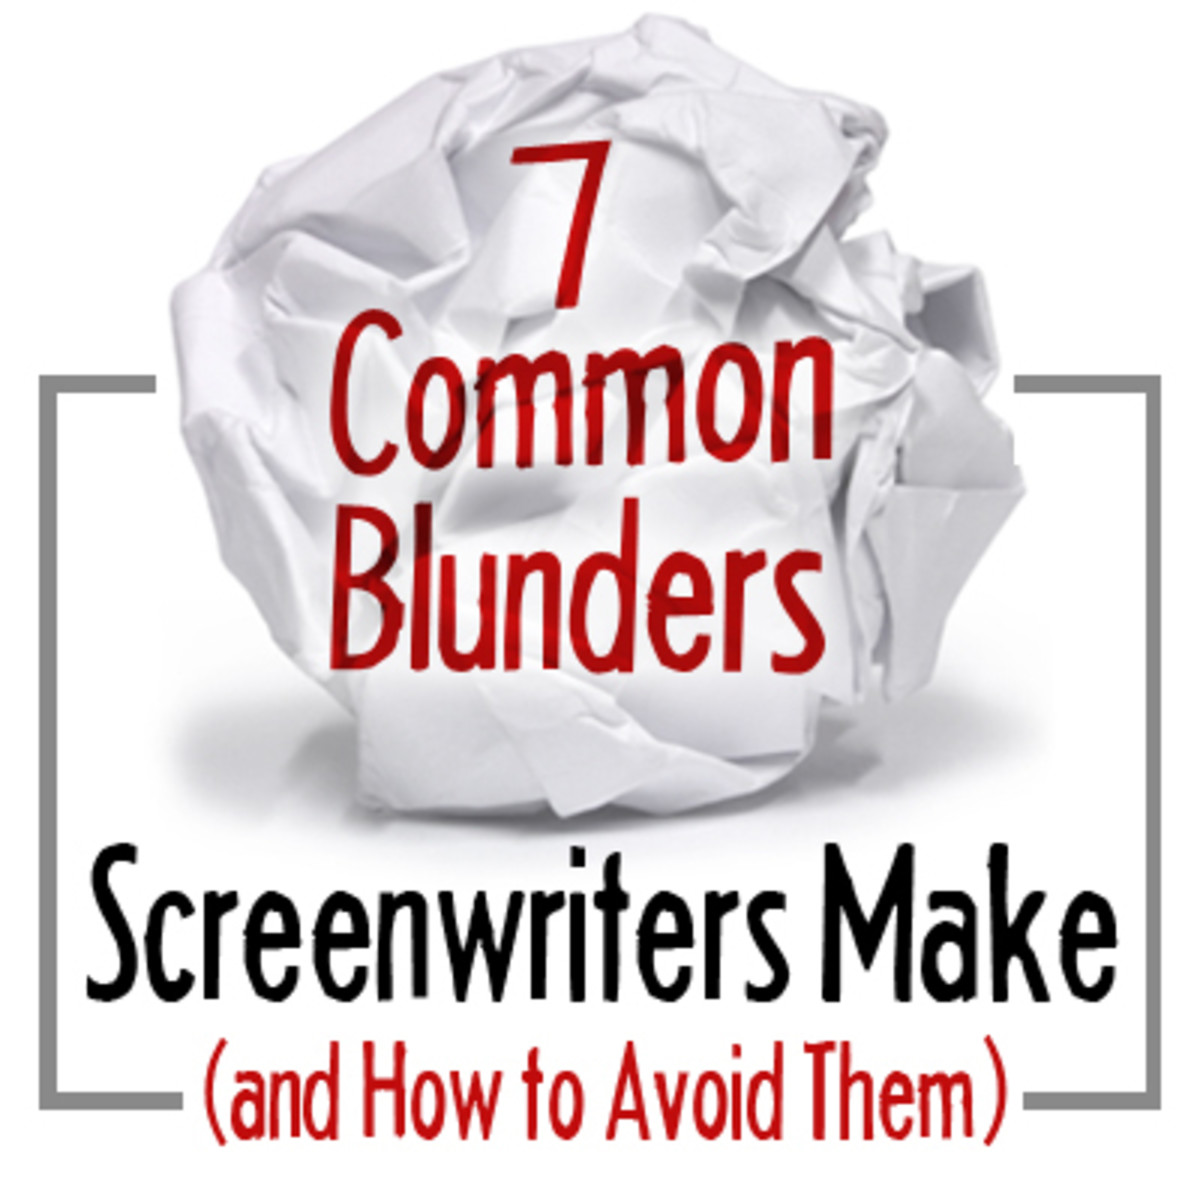 ws_7 blunders screenwriters make